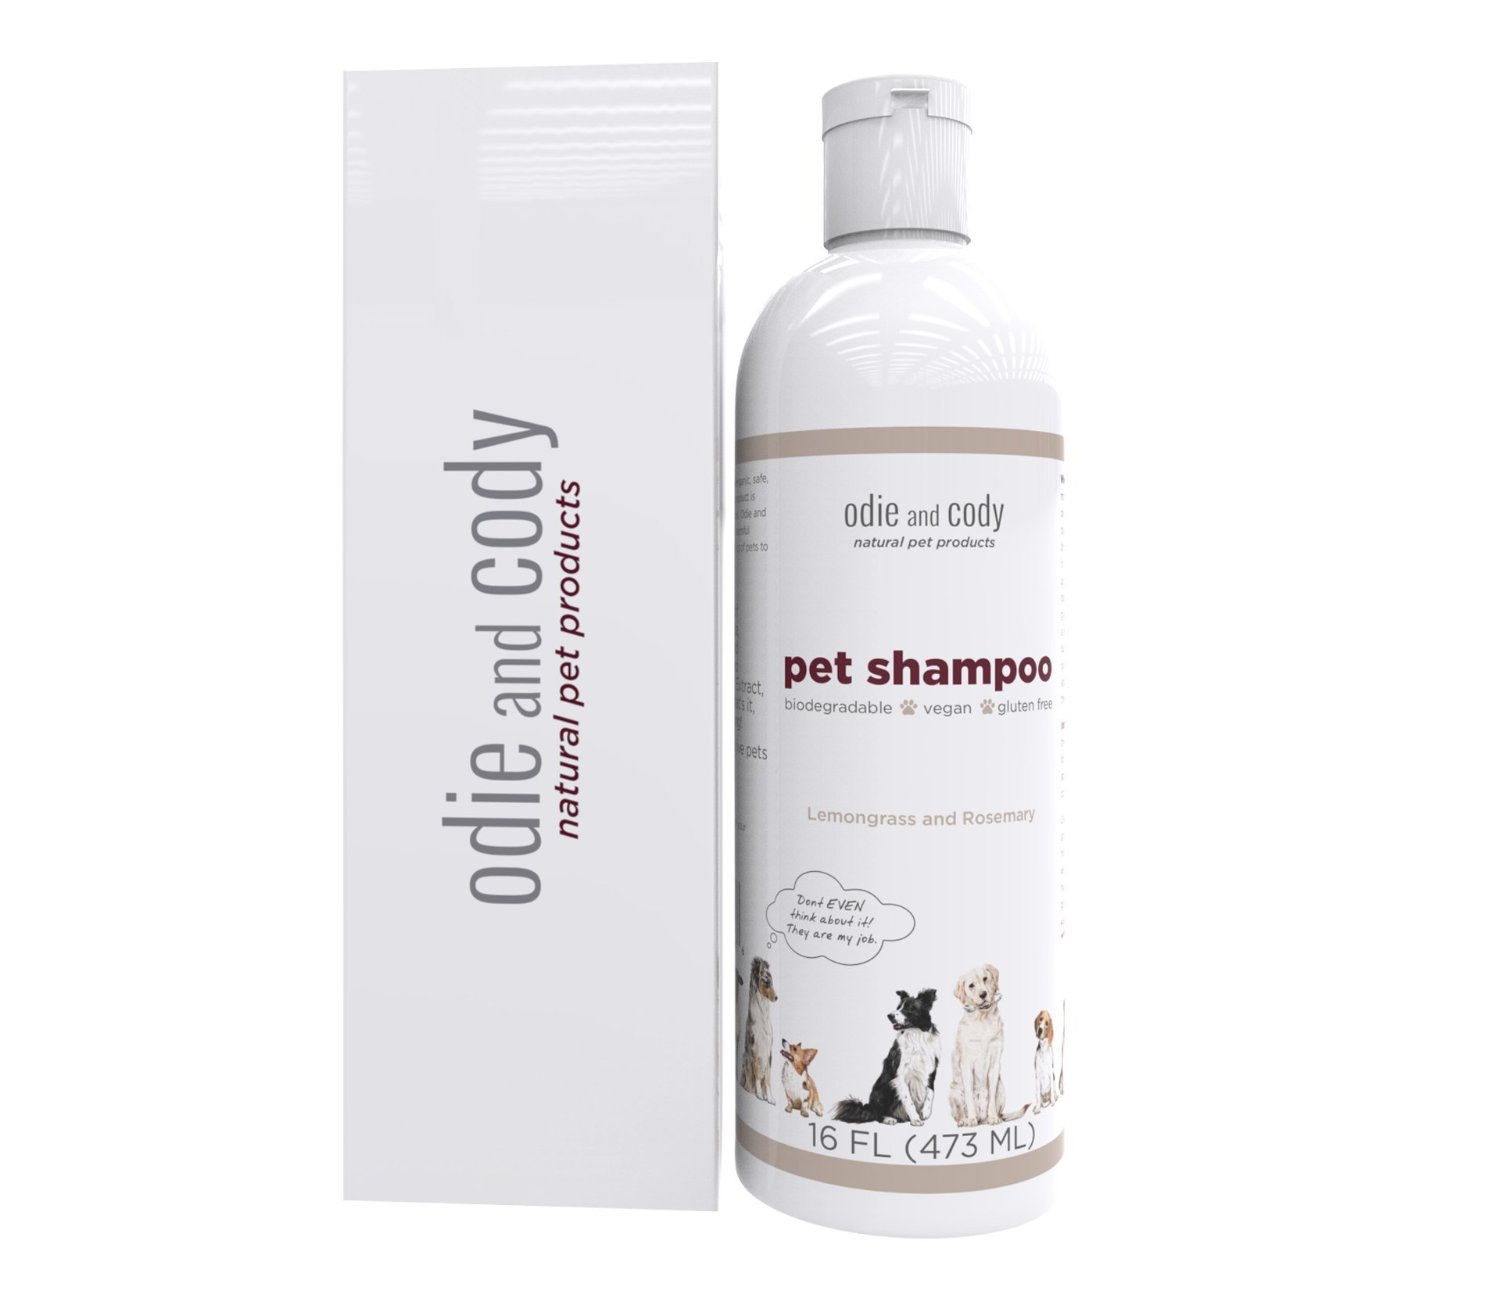 Try Treating Your Pets First Odie And Cody Natural Dog Shampoo,anic Pet  Shampoo For